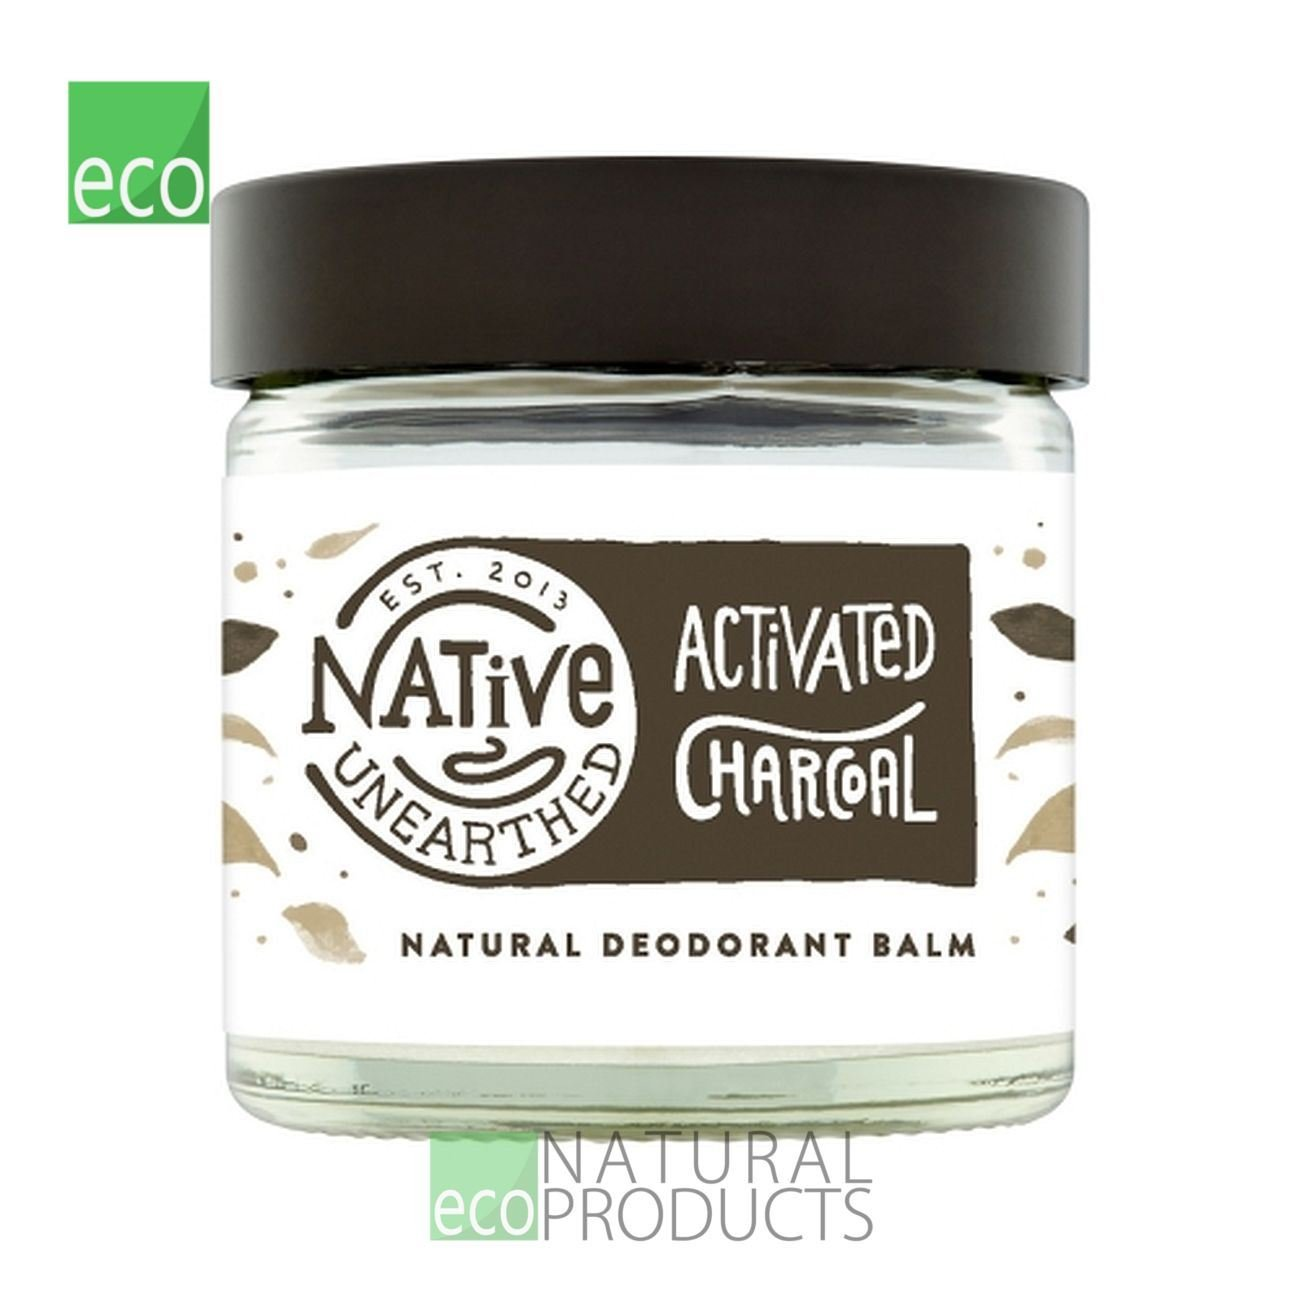 Native Unearthed Natural Deodorant, Activated Charcoal, 60 ml 90503